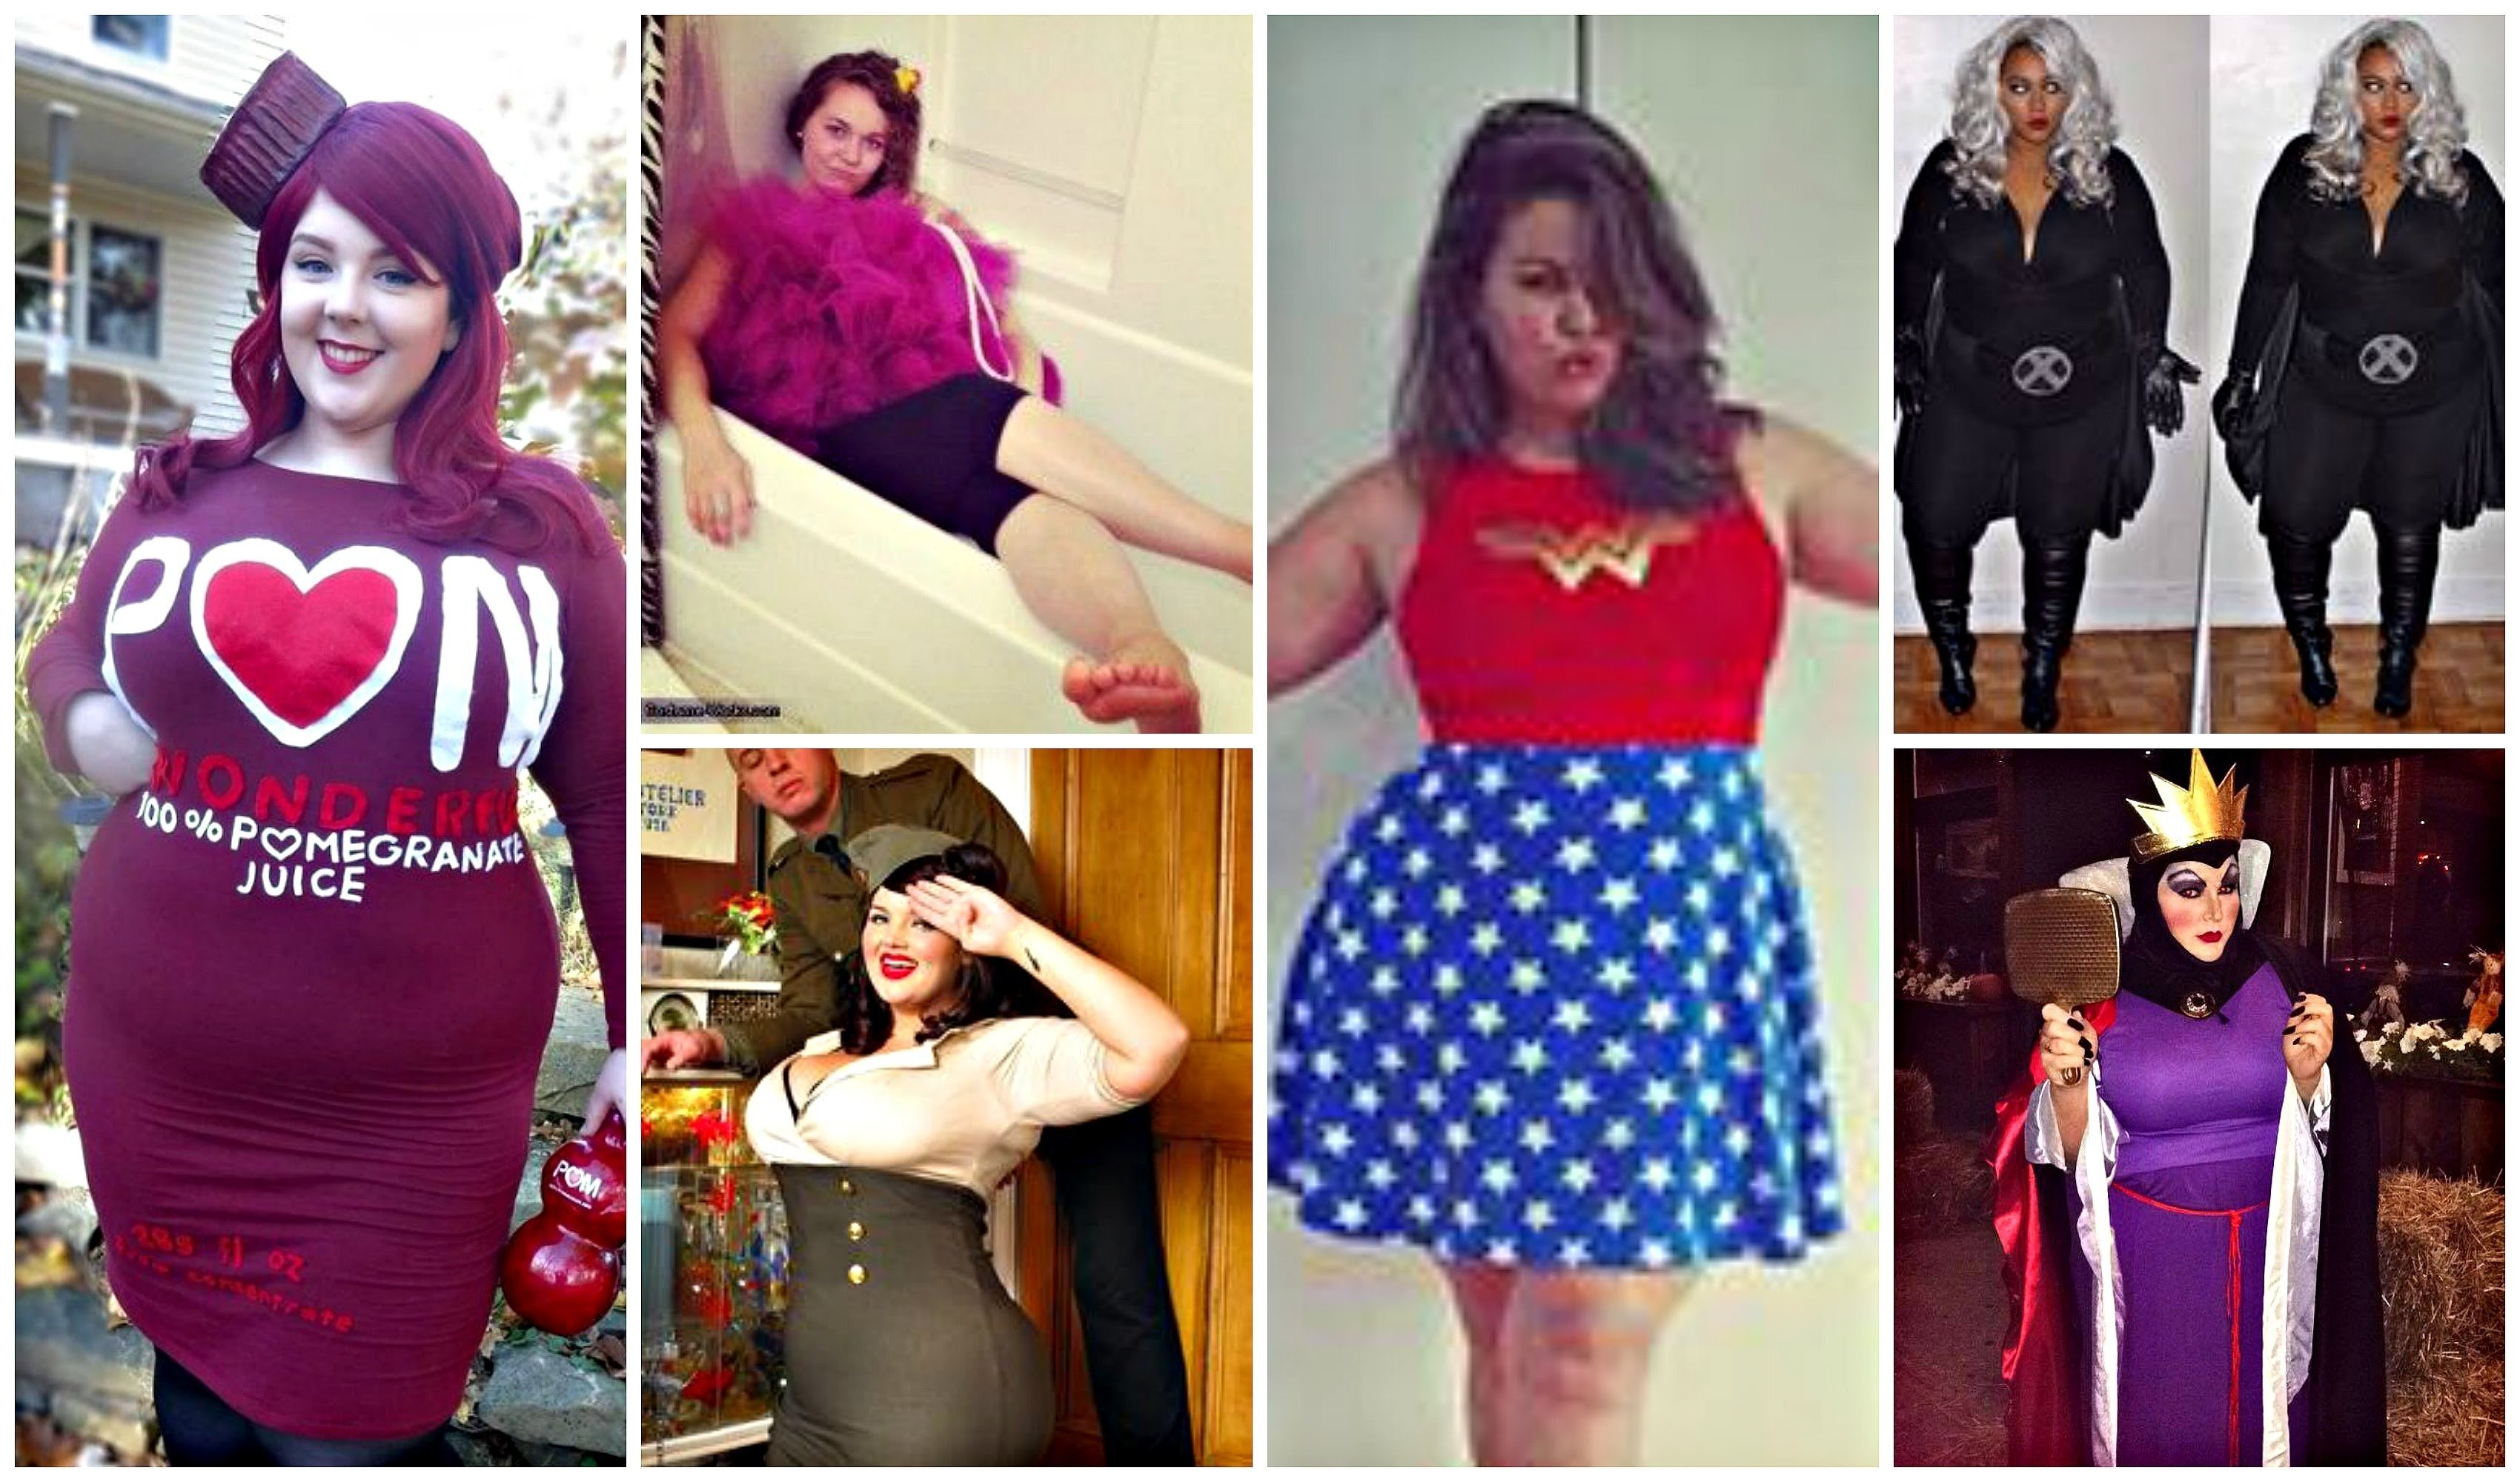 plus size halloween costume ideas for women you'll actually want to